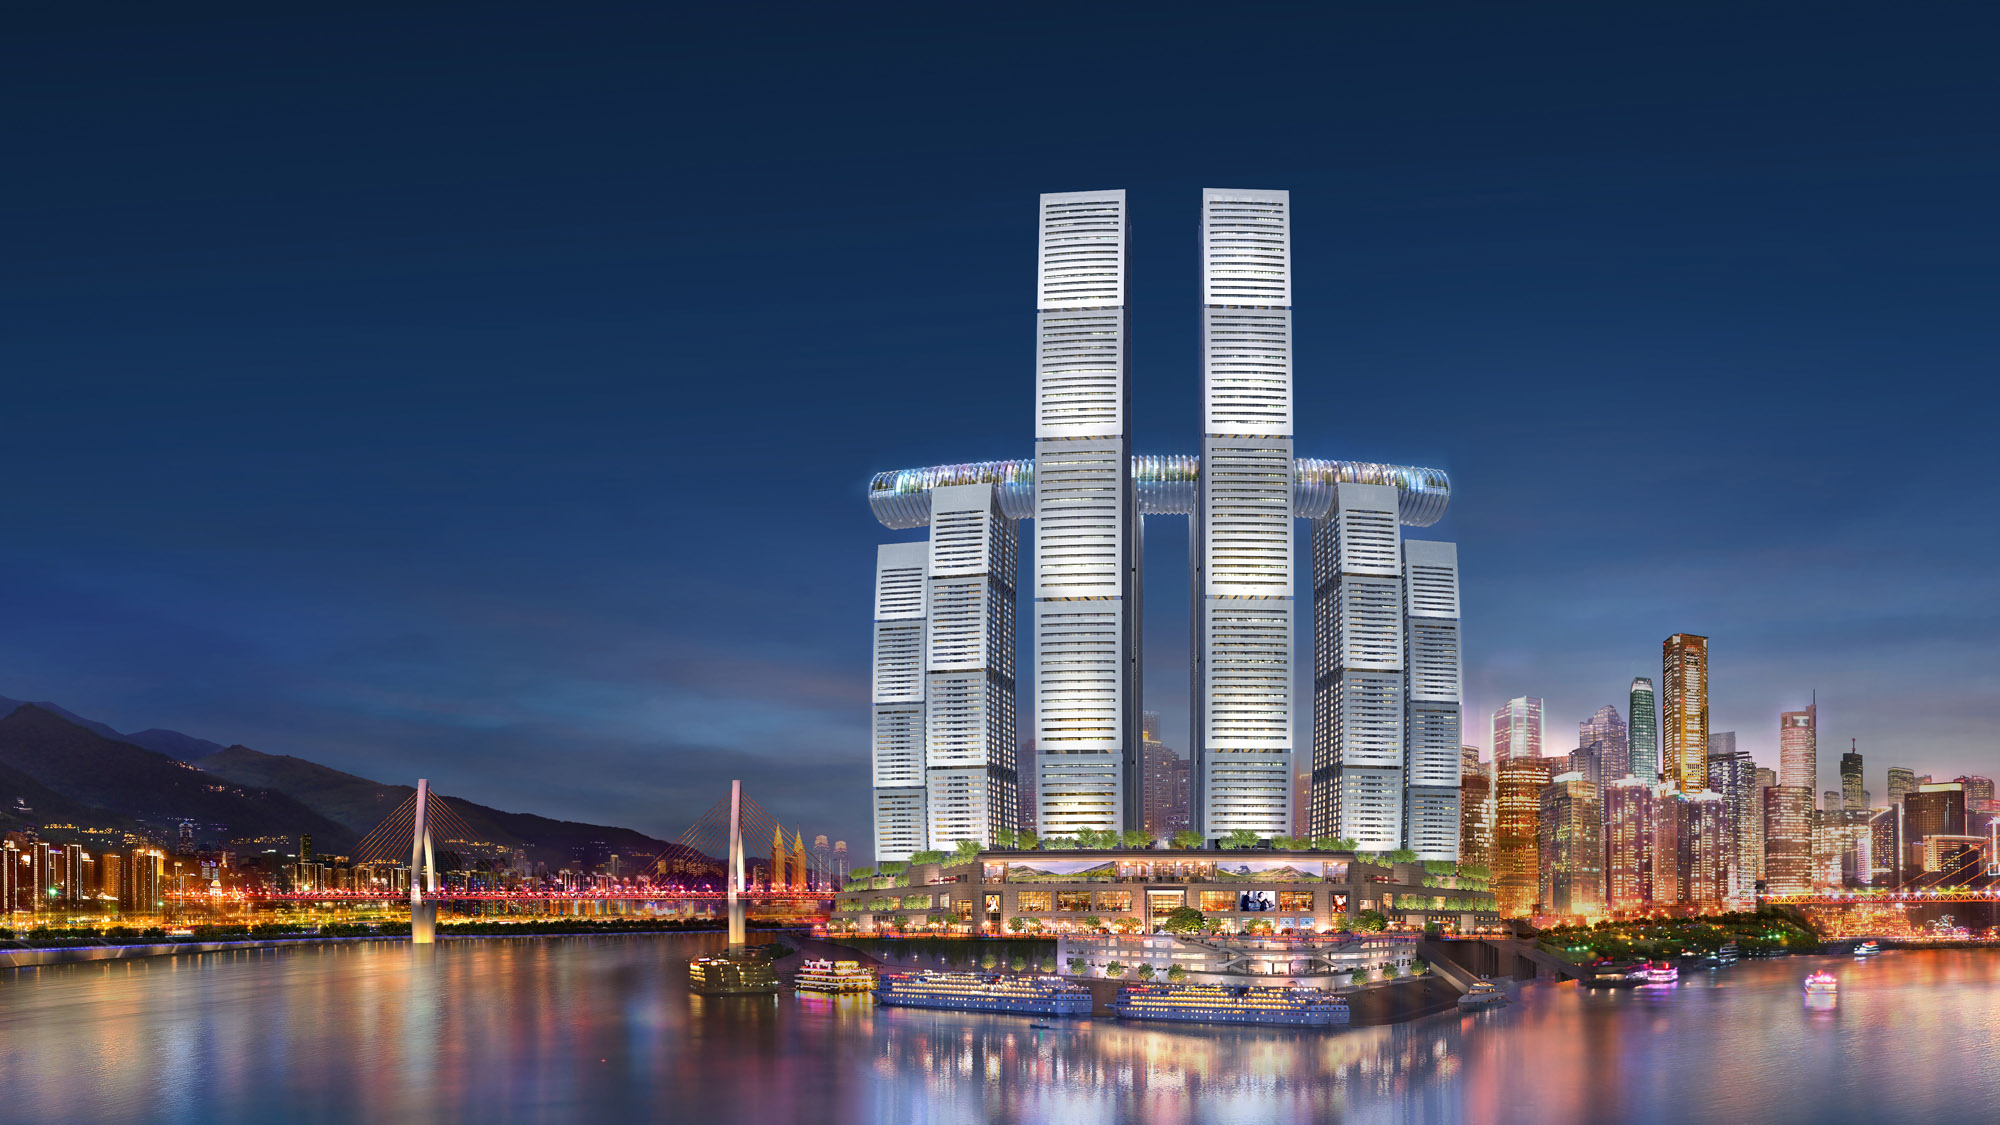 Raffles City Chongqing 2 2000x1125c Safdie Architects  CapitaLand China Investment Co Ltd1.jpg